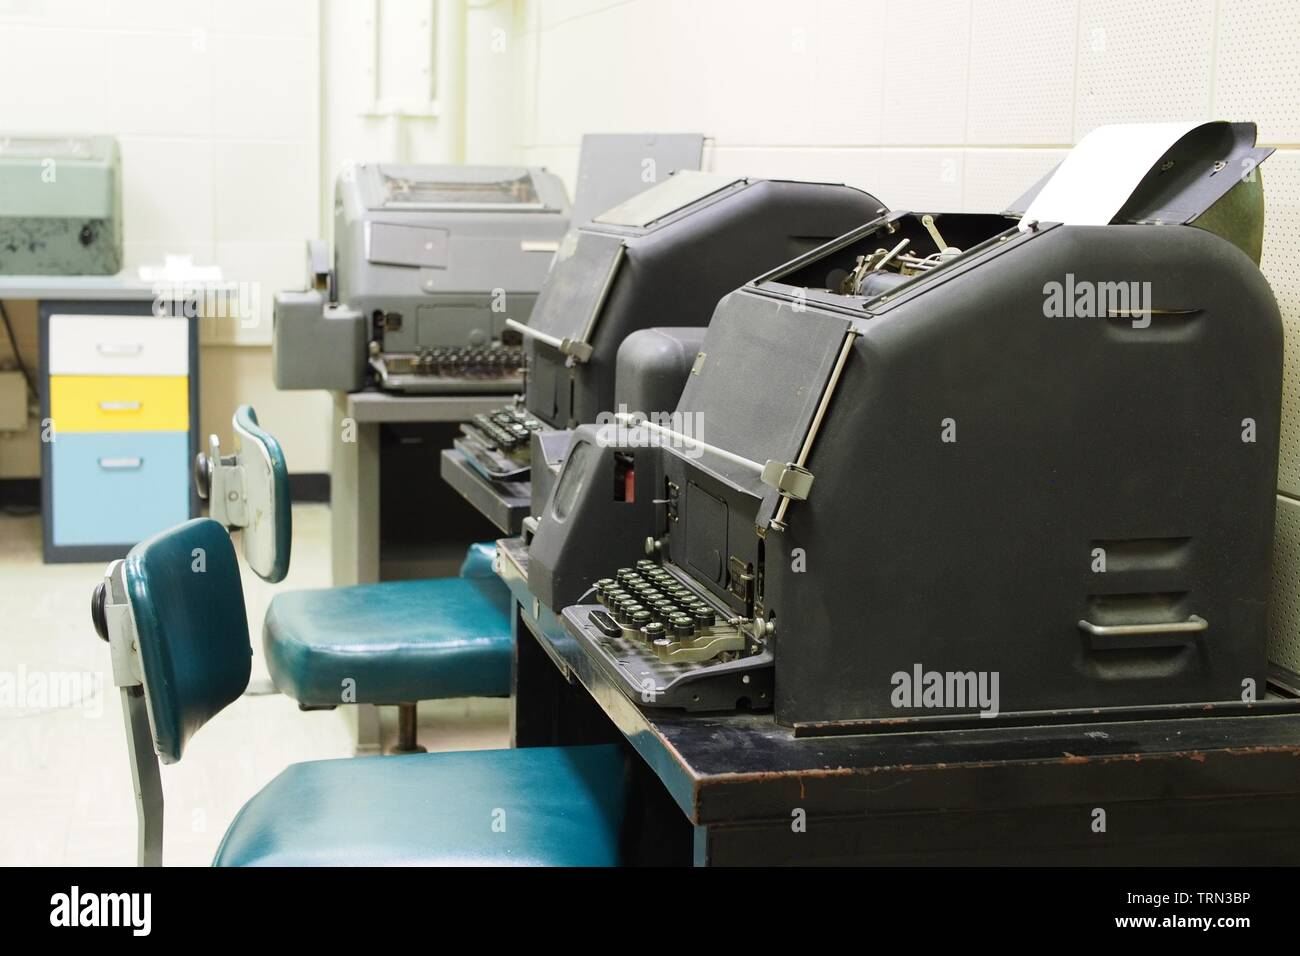 Teleprinters in the Communications Centre of the Diefenbunker, Canada's Cold War Museum, located just outside Ottawa in Carp, Ontario, Canada. Stock Photo